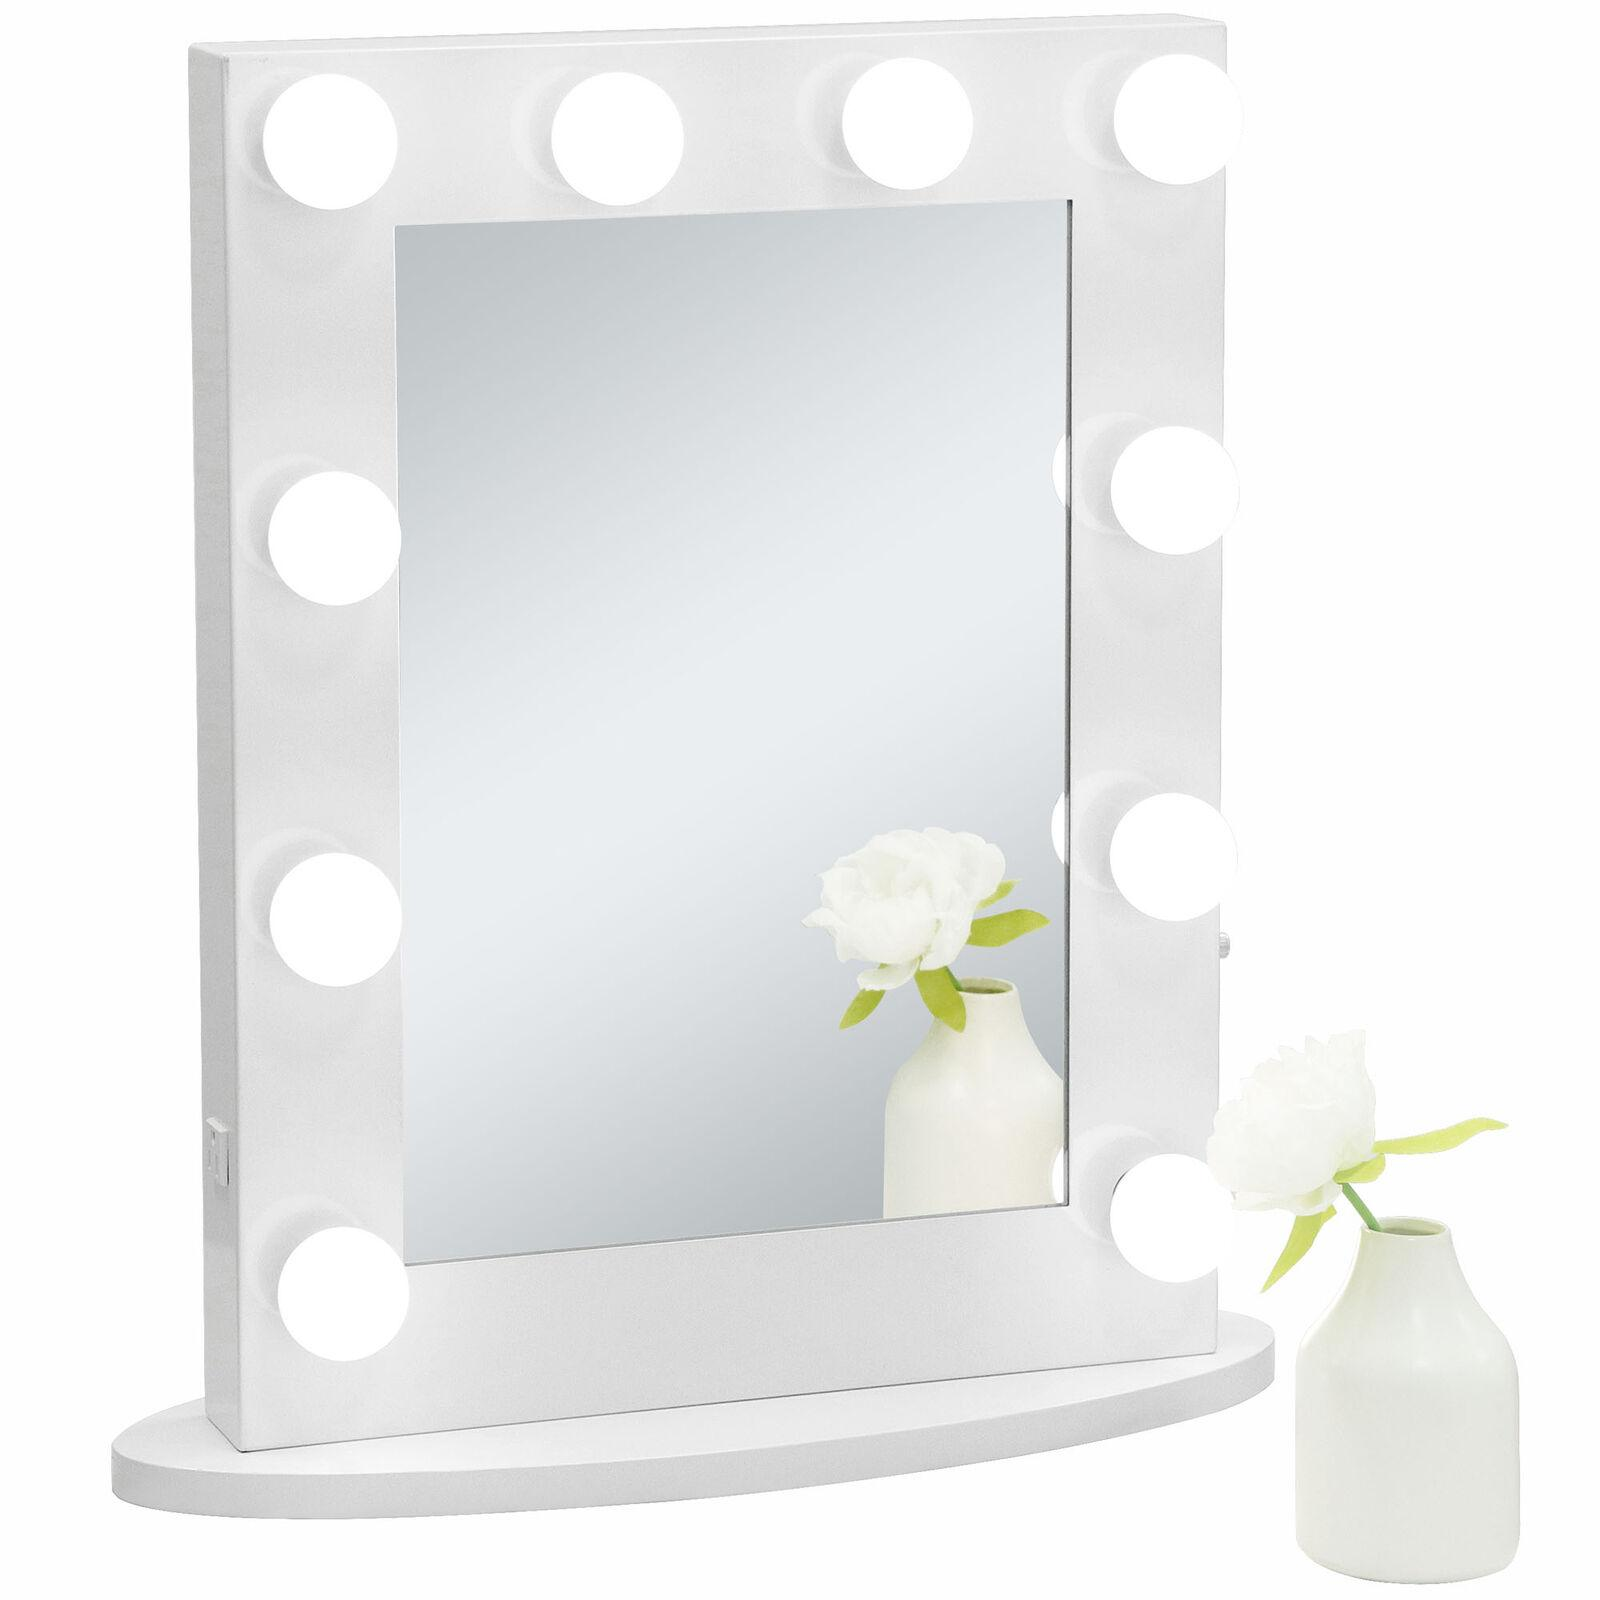 Picture of: Hollywood Makeup Vanity Mirror Led Light With 10 Dimmable Bulbs Wall Mounted Large Room Mirrors Large Round Mirror From Jiangmingsheng 74 28 Dhgate Com